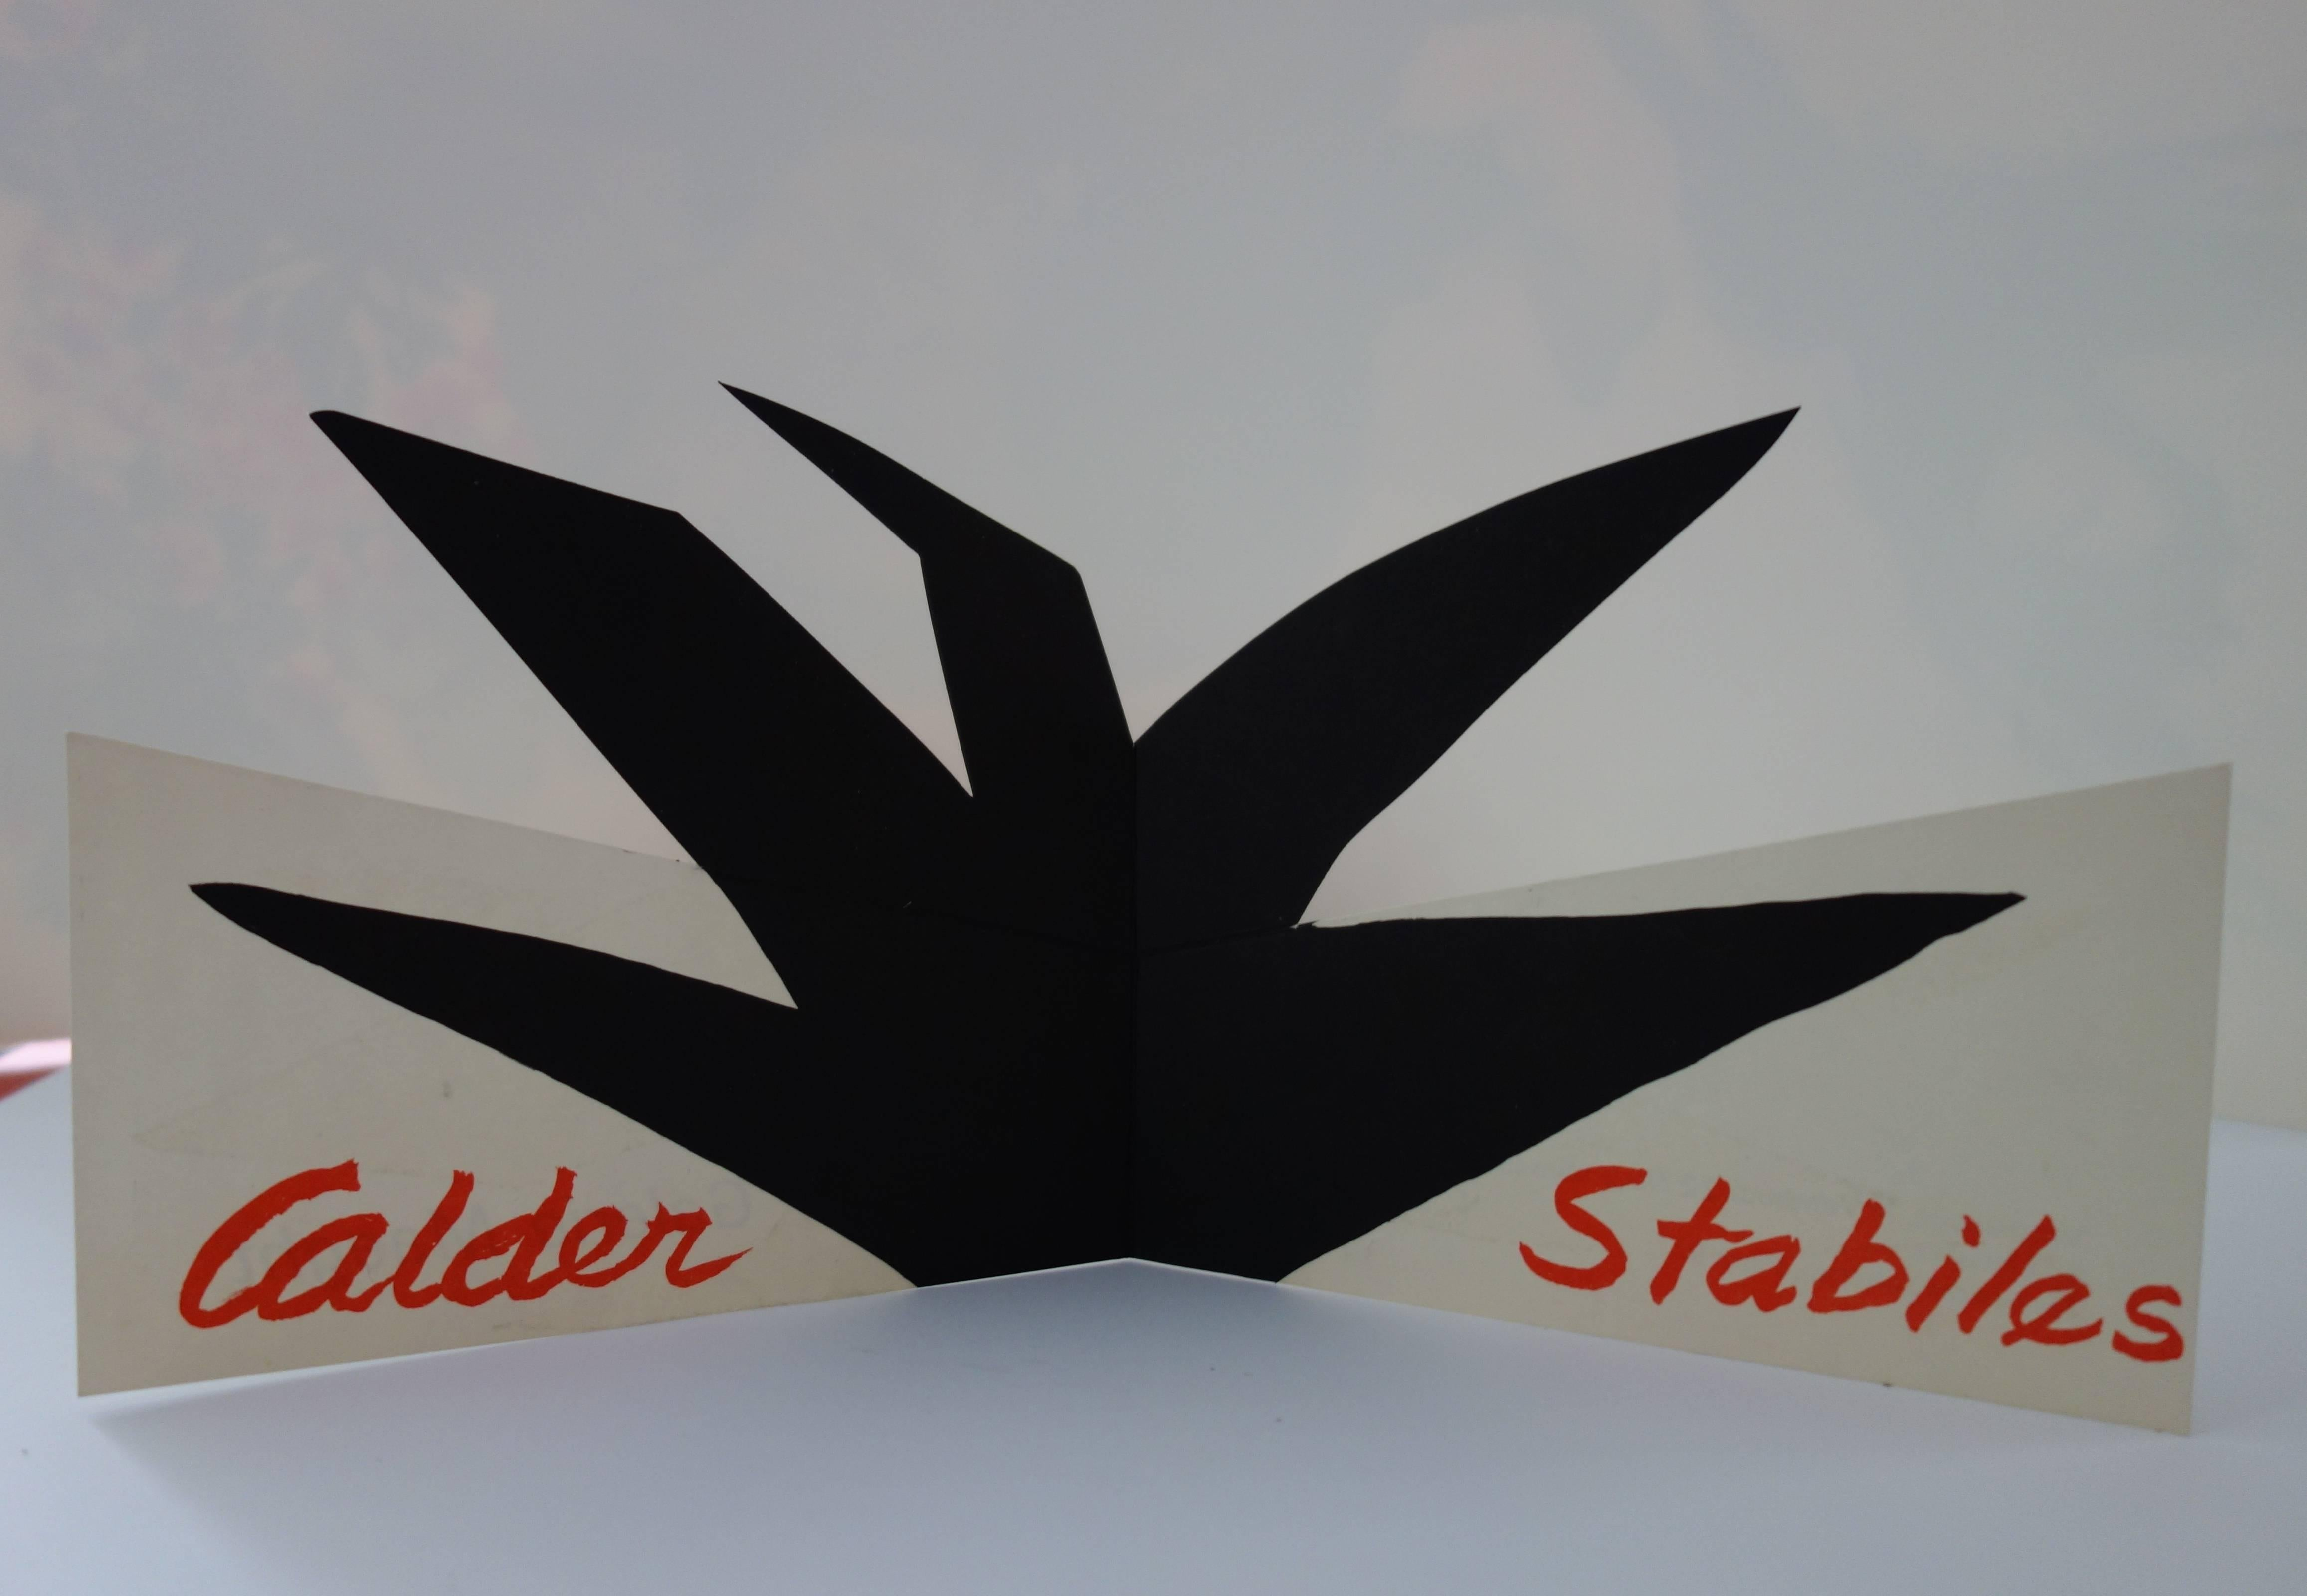 Stabiles - Original lithographic pop-up card - Plate signed - Maeght 1963